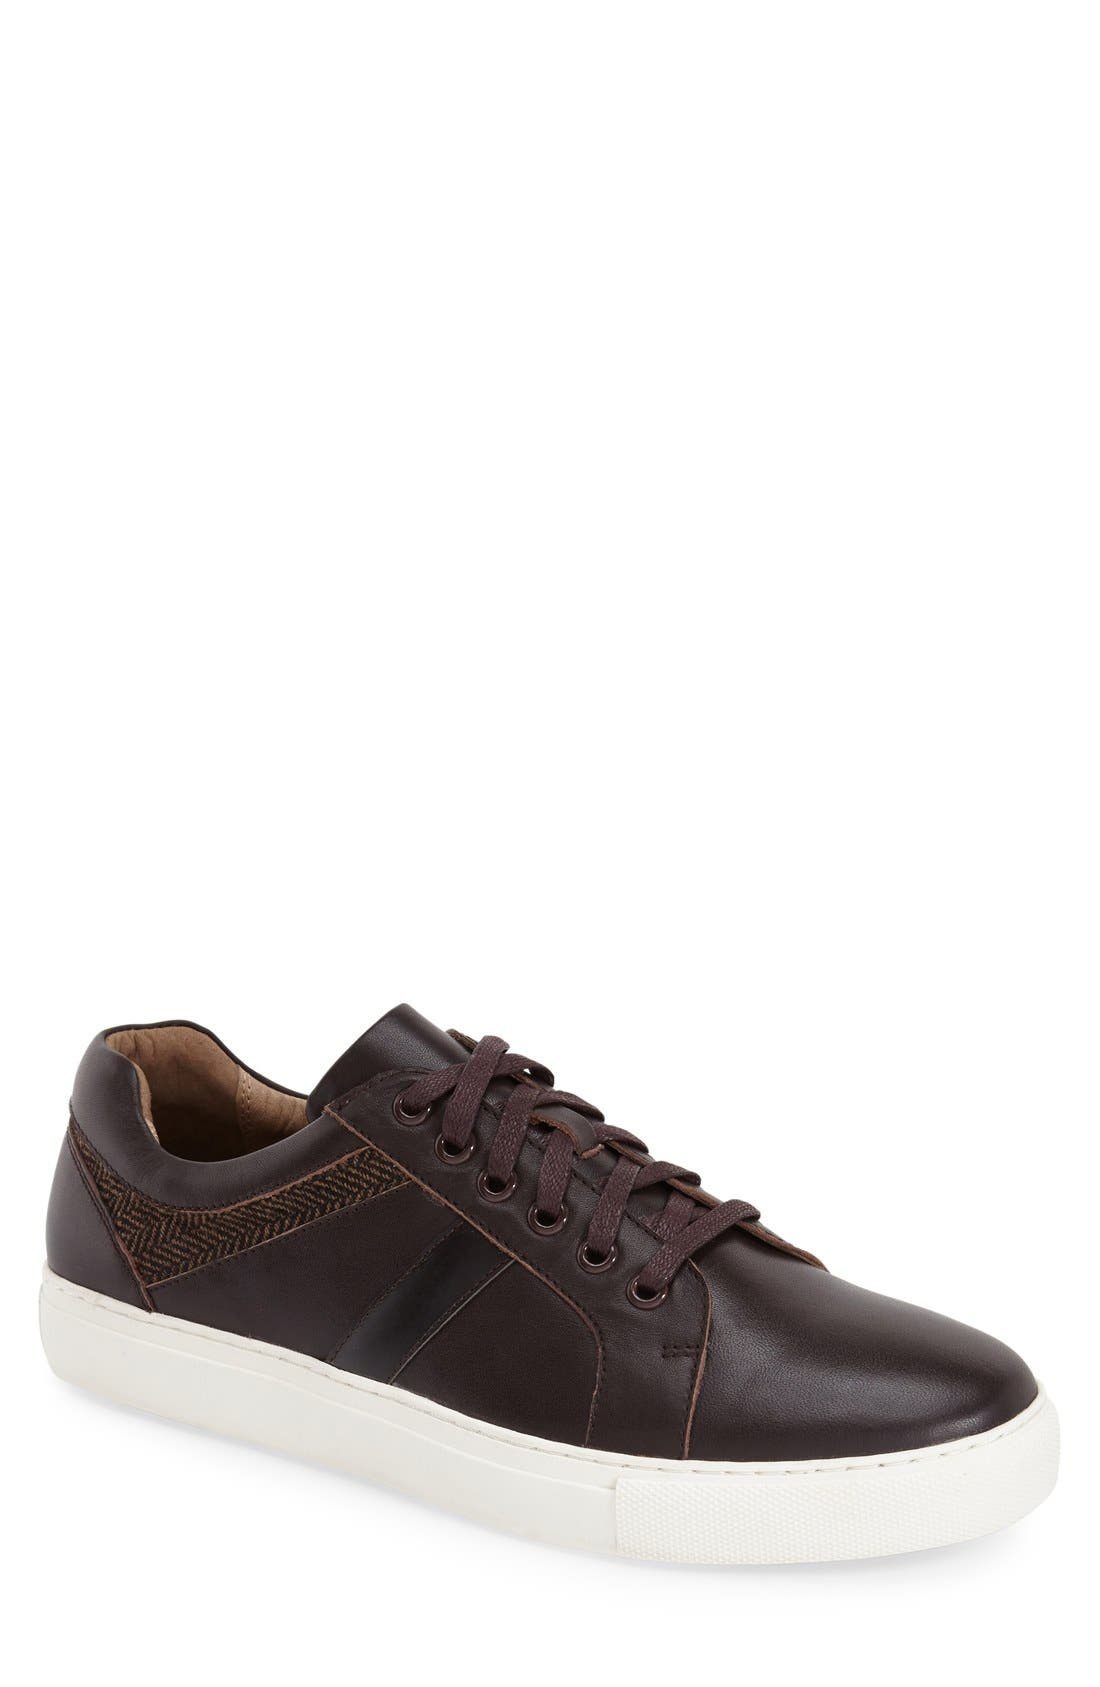 'Mixer' Sneaker,                             Main thumbnail 1, color,                             Brown Leather